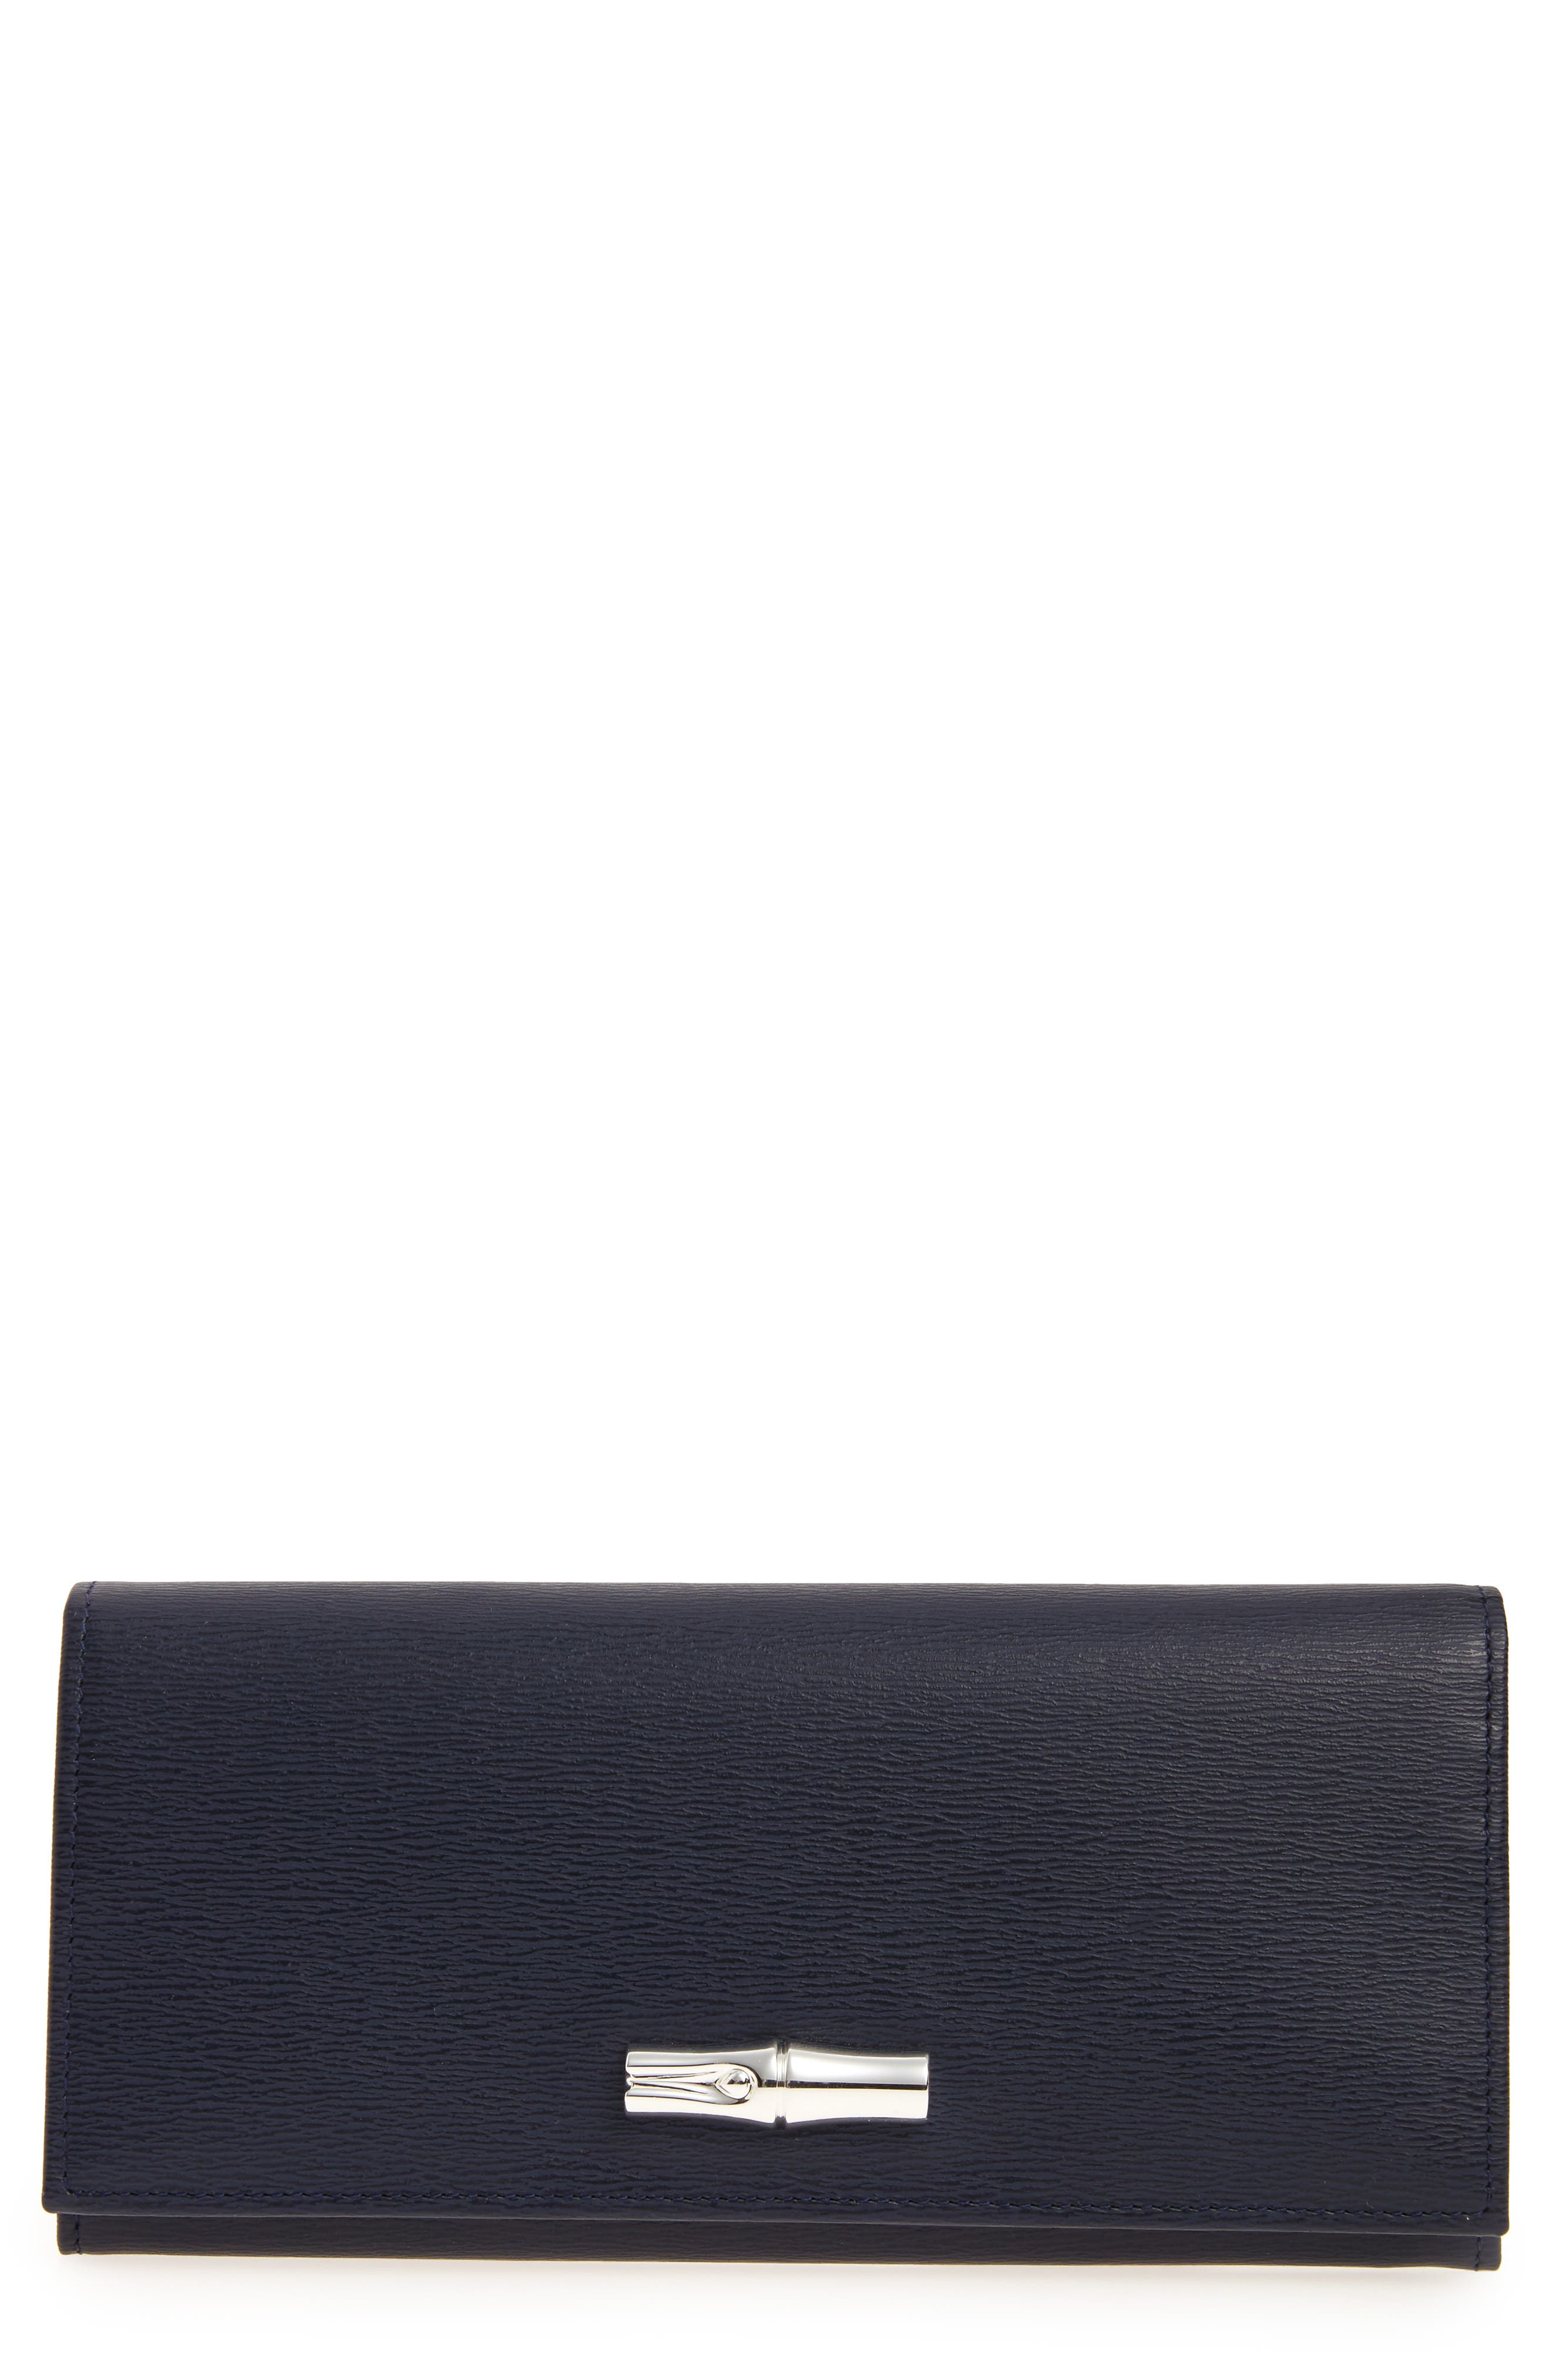 Main Image - Longchamp Roseau Leather Continental Wallet